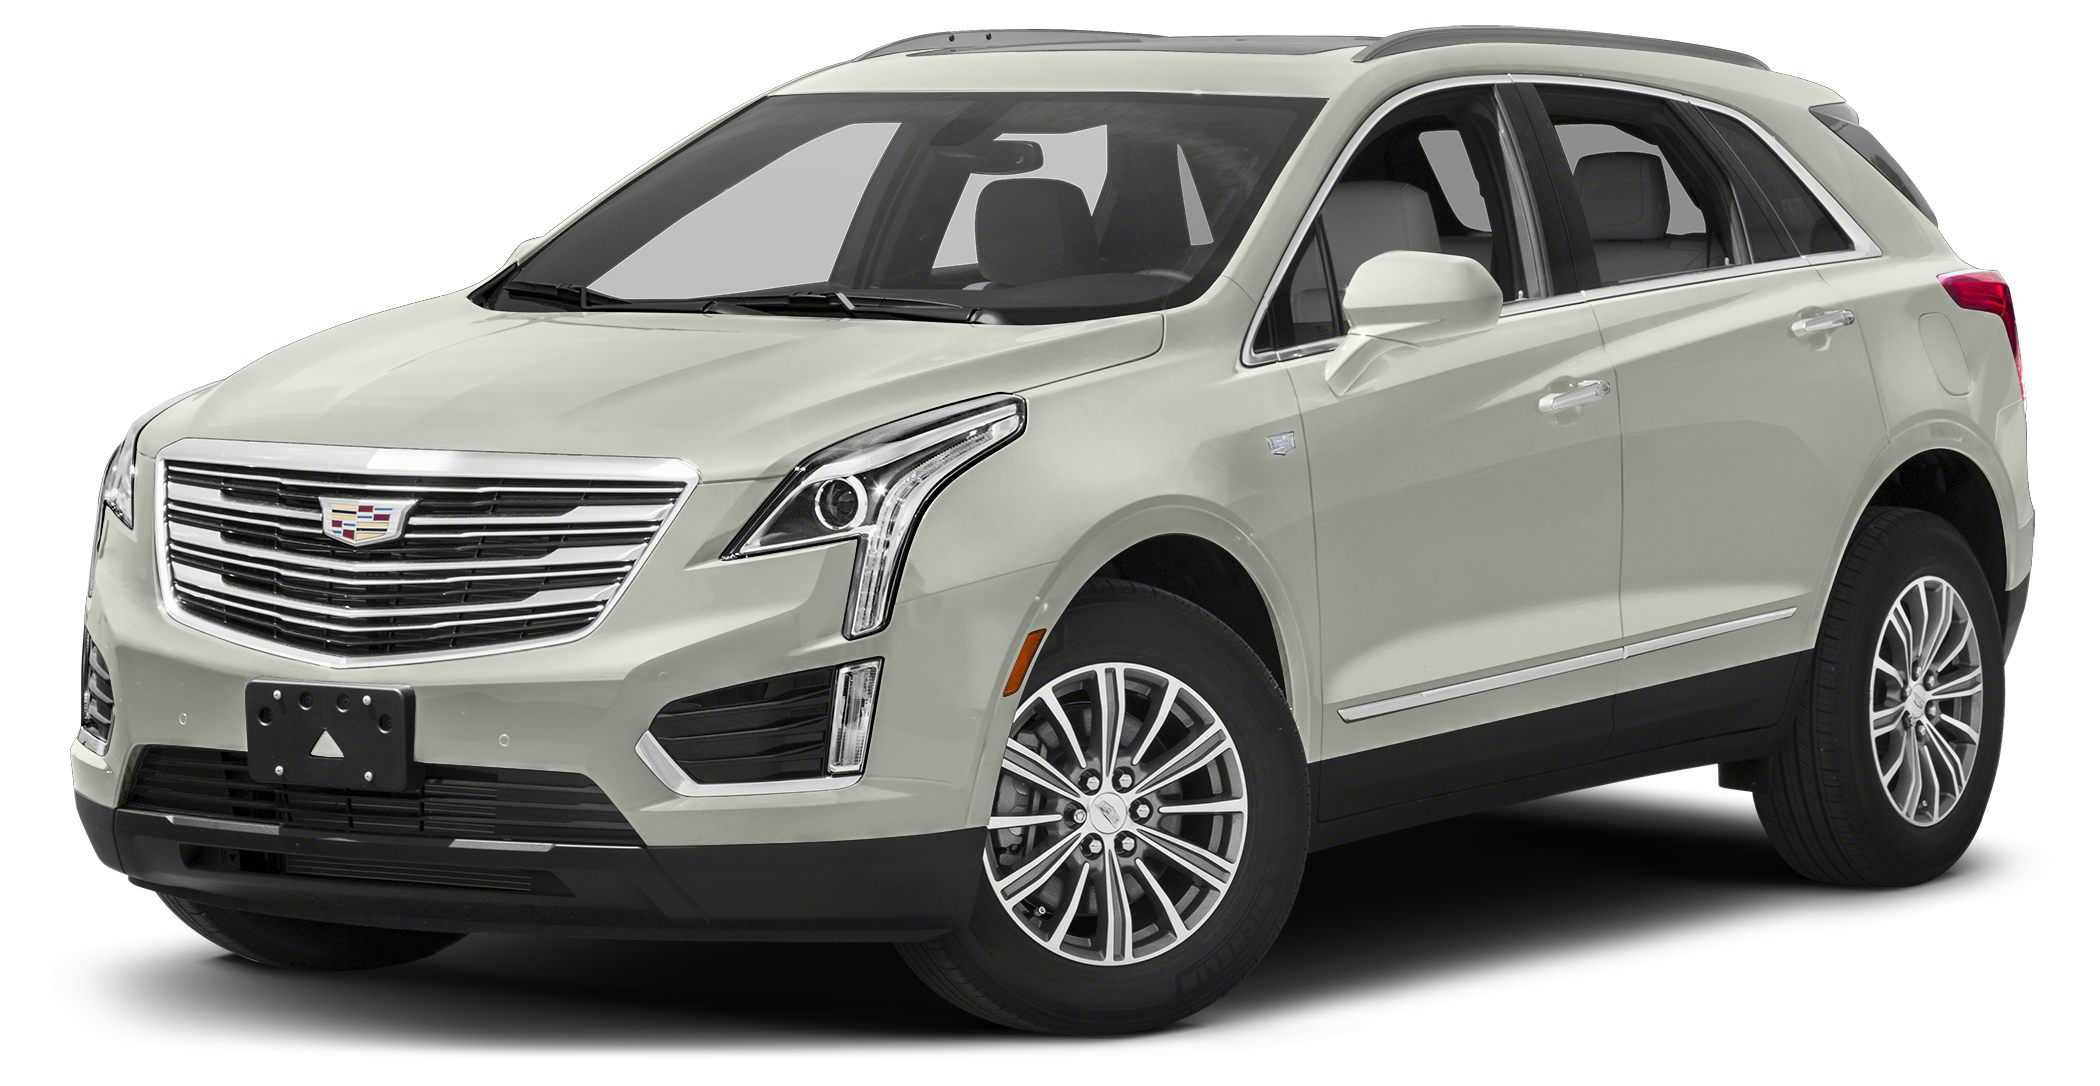 Cadillac Of Mahwah >> 2017 CADILLAC XT5 for Sale in Mahwah, NJ | 1GYKNFRS3HZ211583